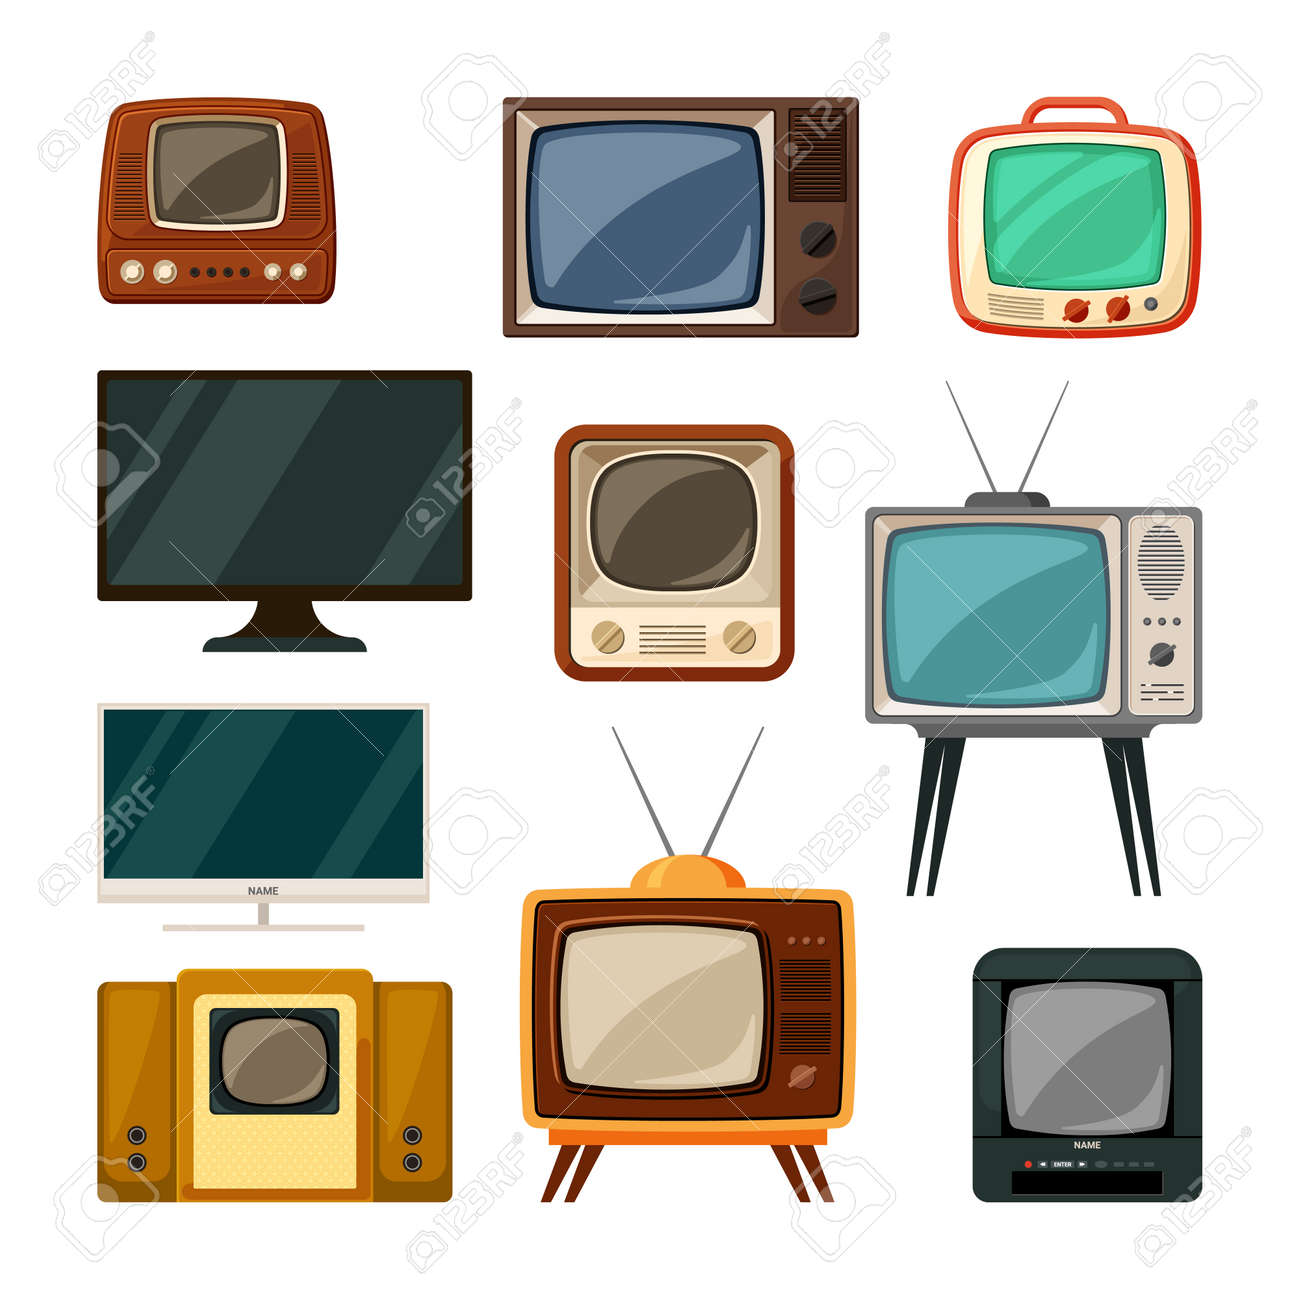 Modern and tube retro televisions set. Plasma smart gadgets and vintage brown tv with small screen old compact signal reception through antenna red built in radio and wood speakers. Vector watch. - 167084382